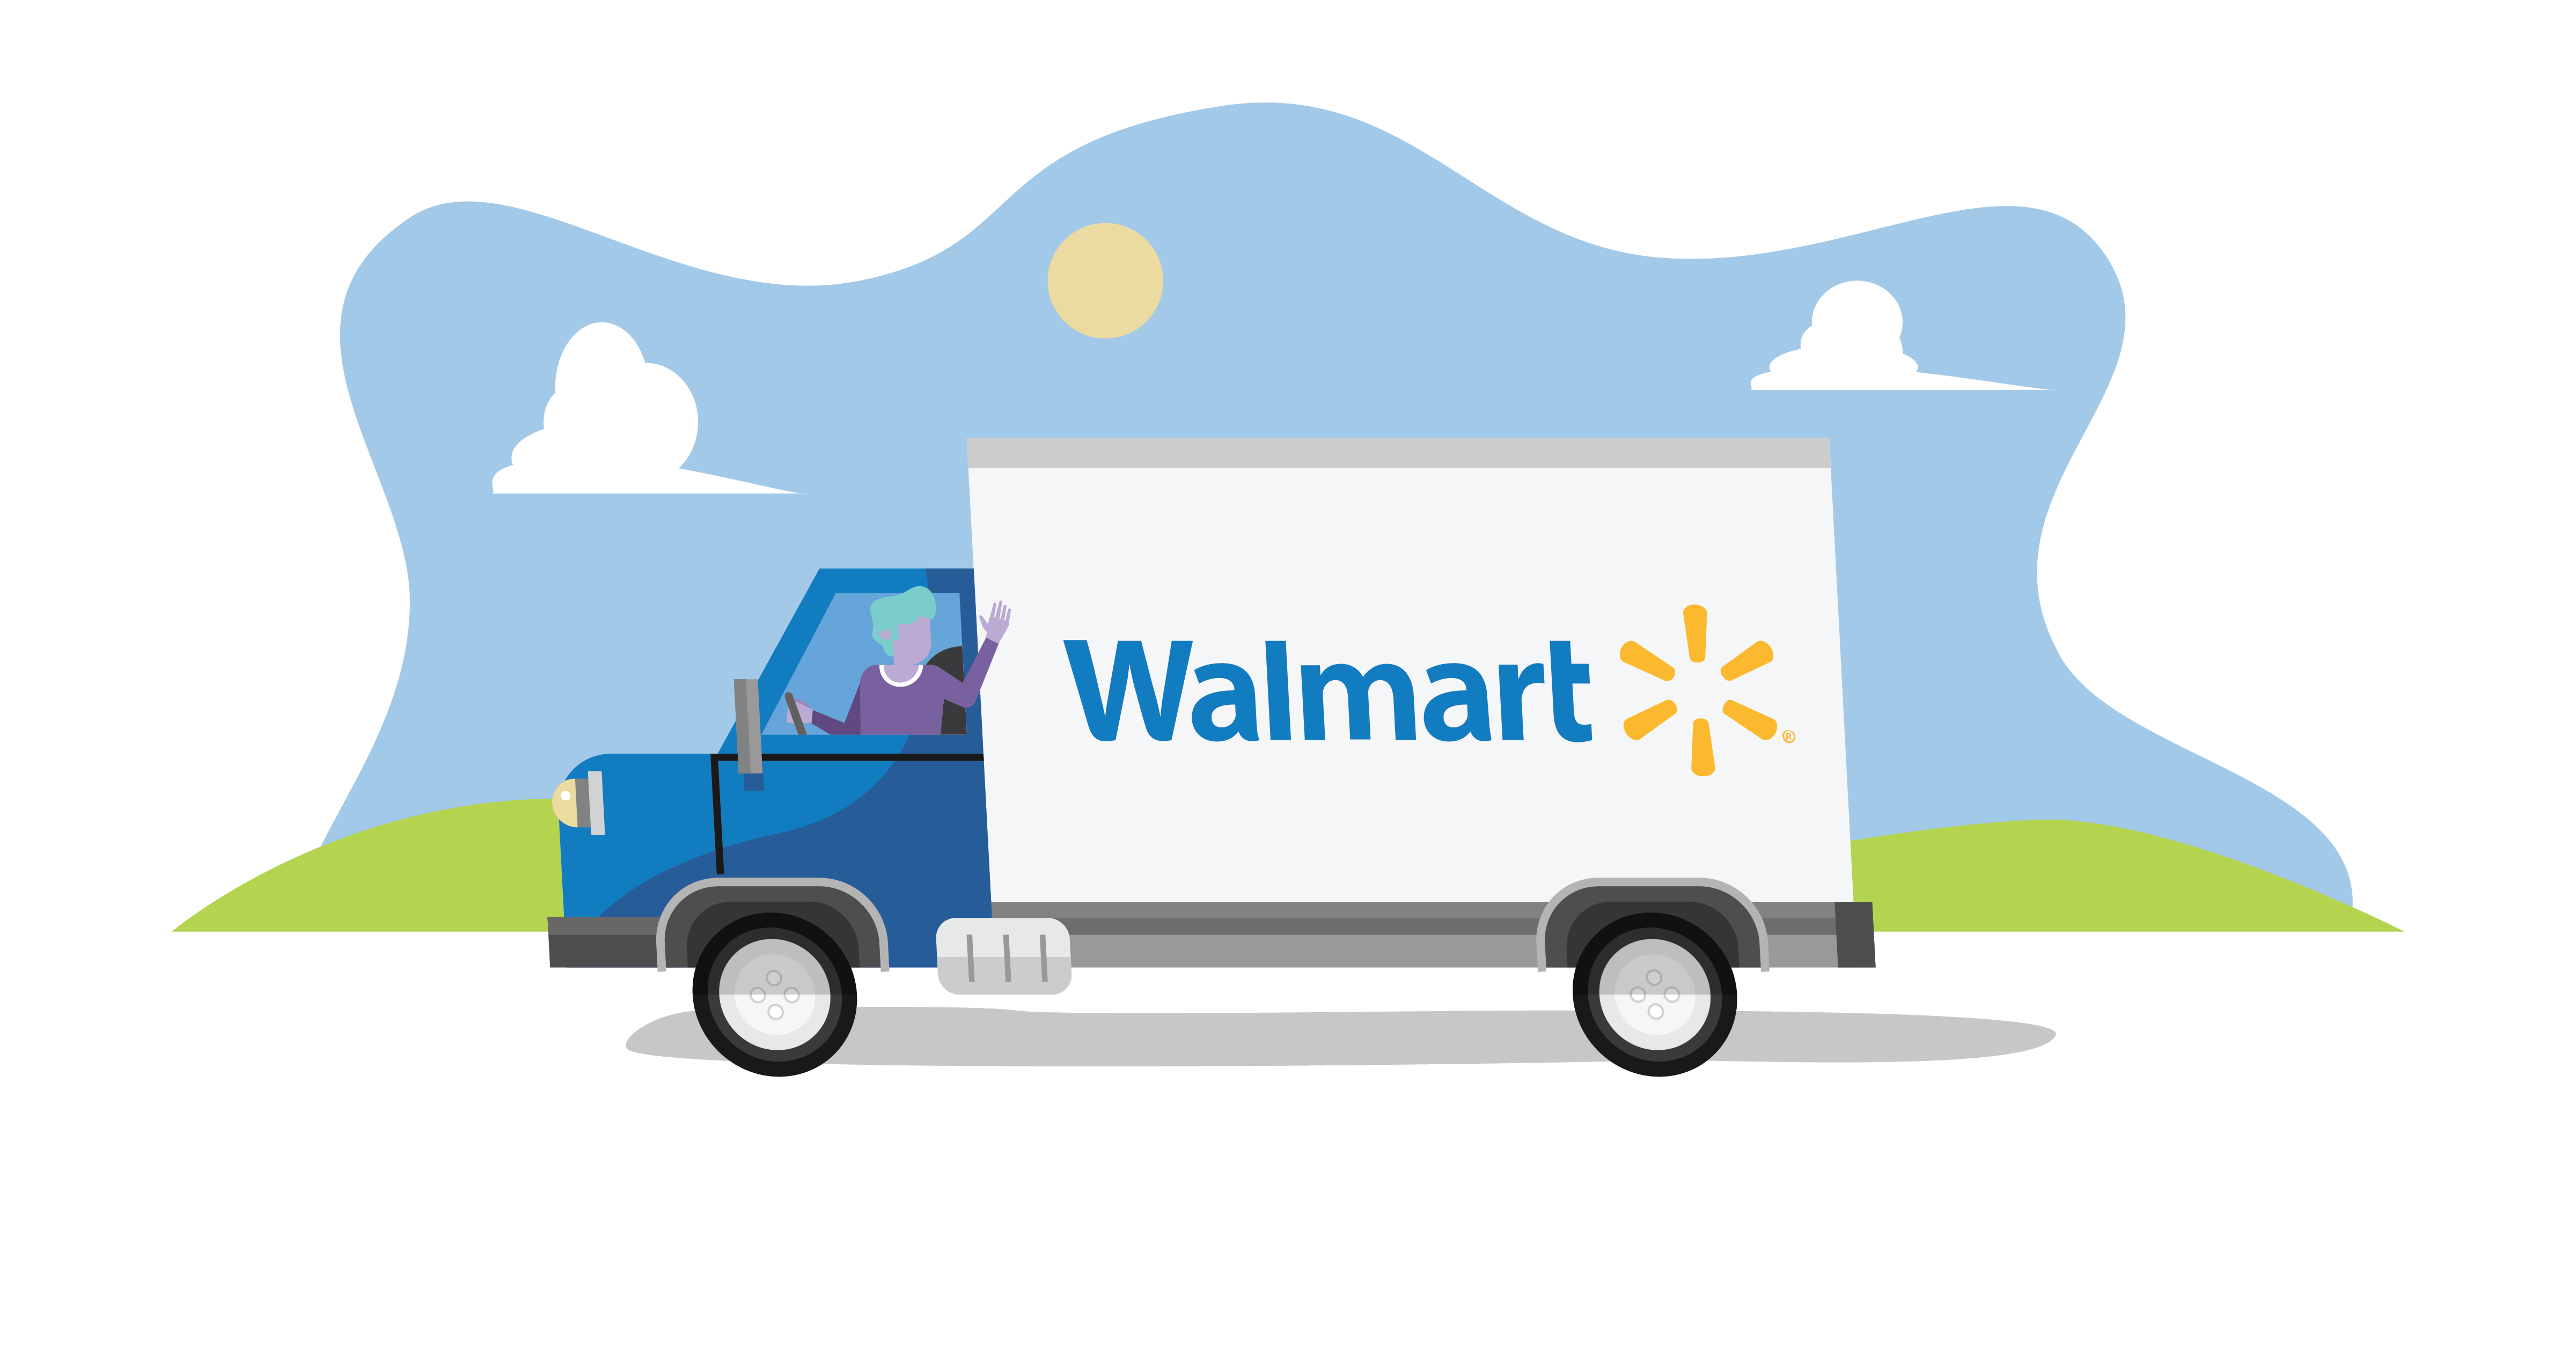 Want to Get Started on Walmart? Go From 0.